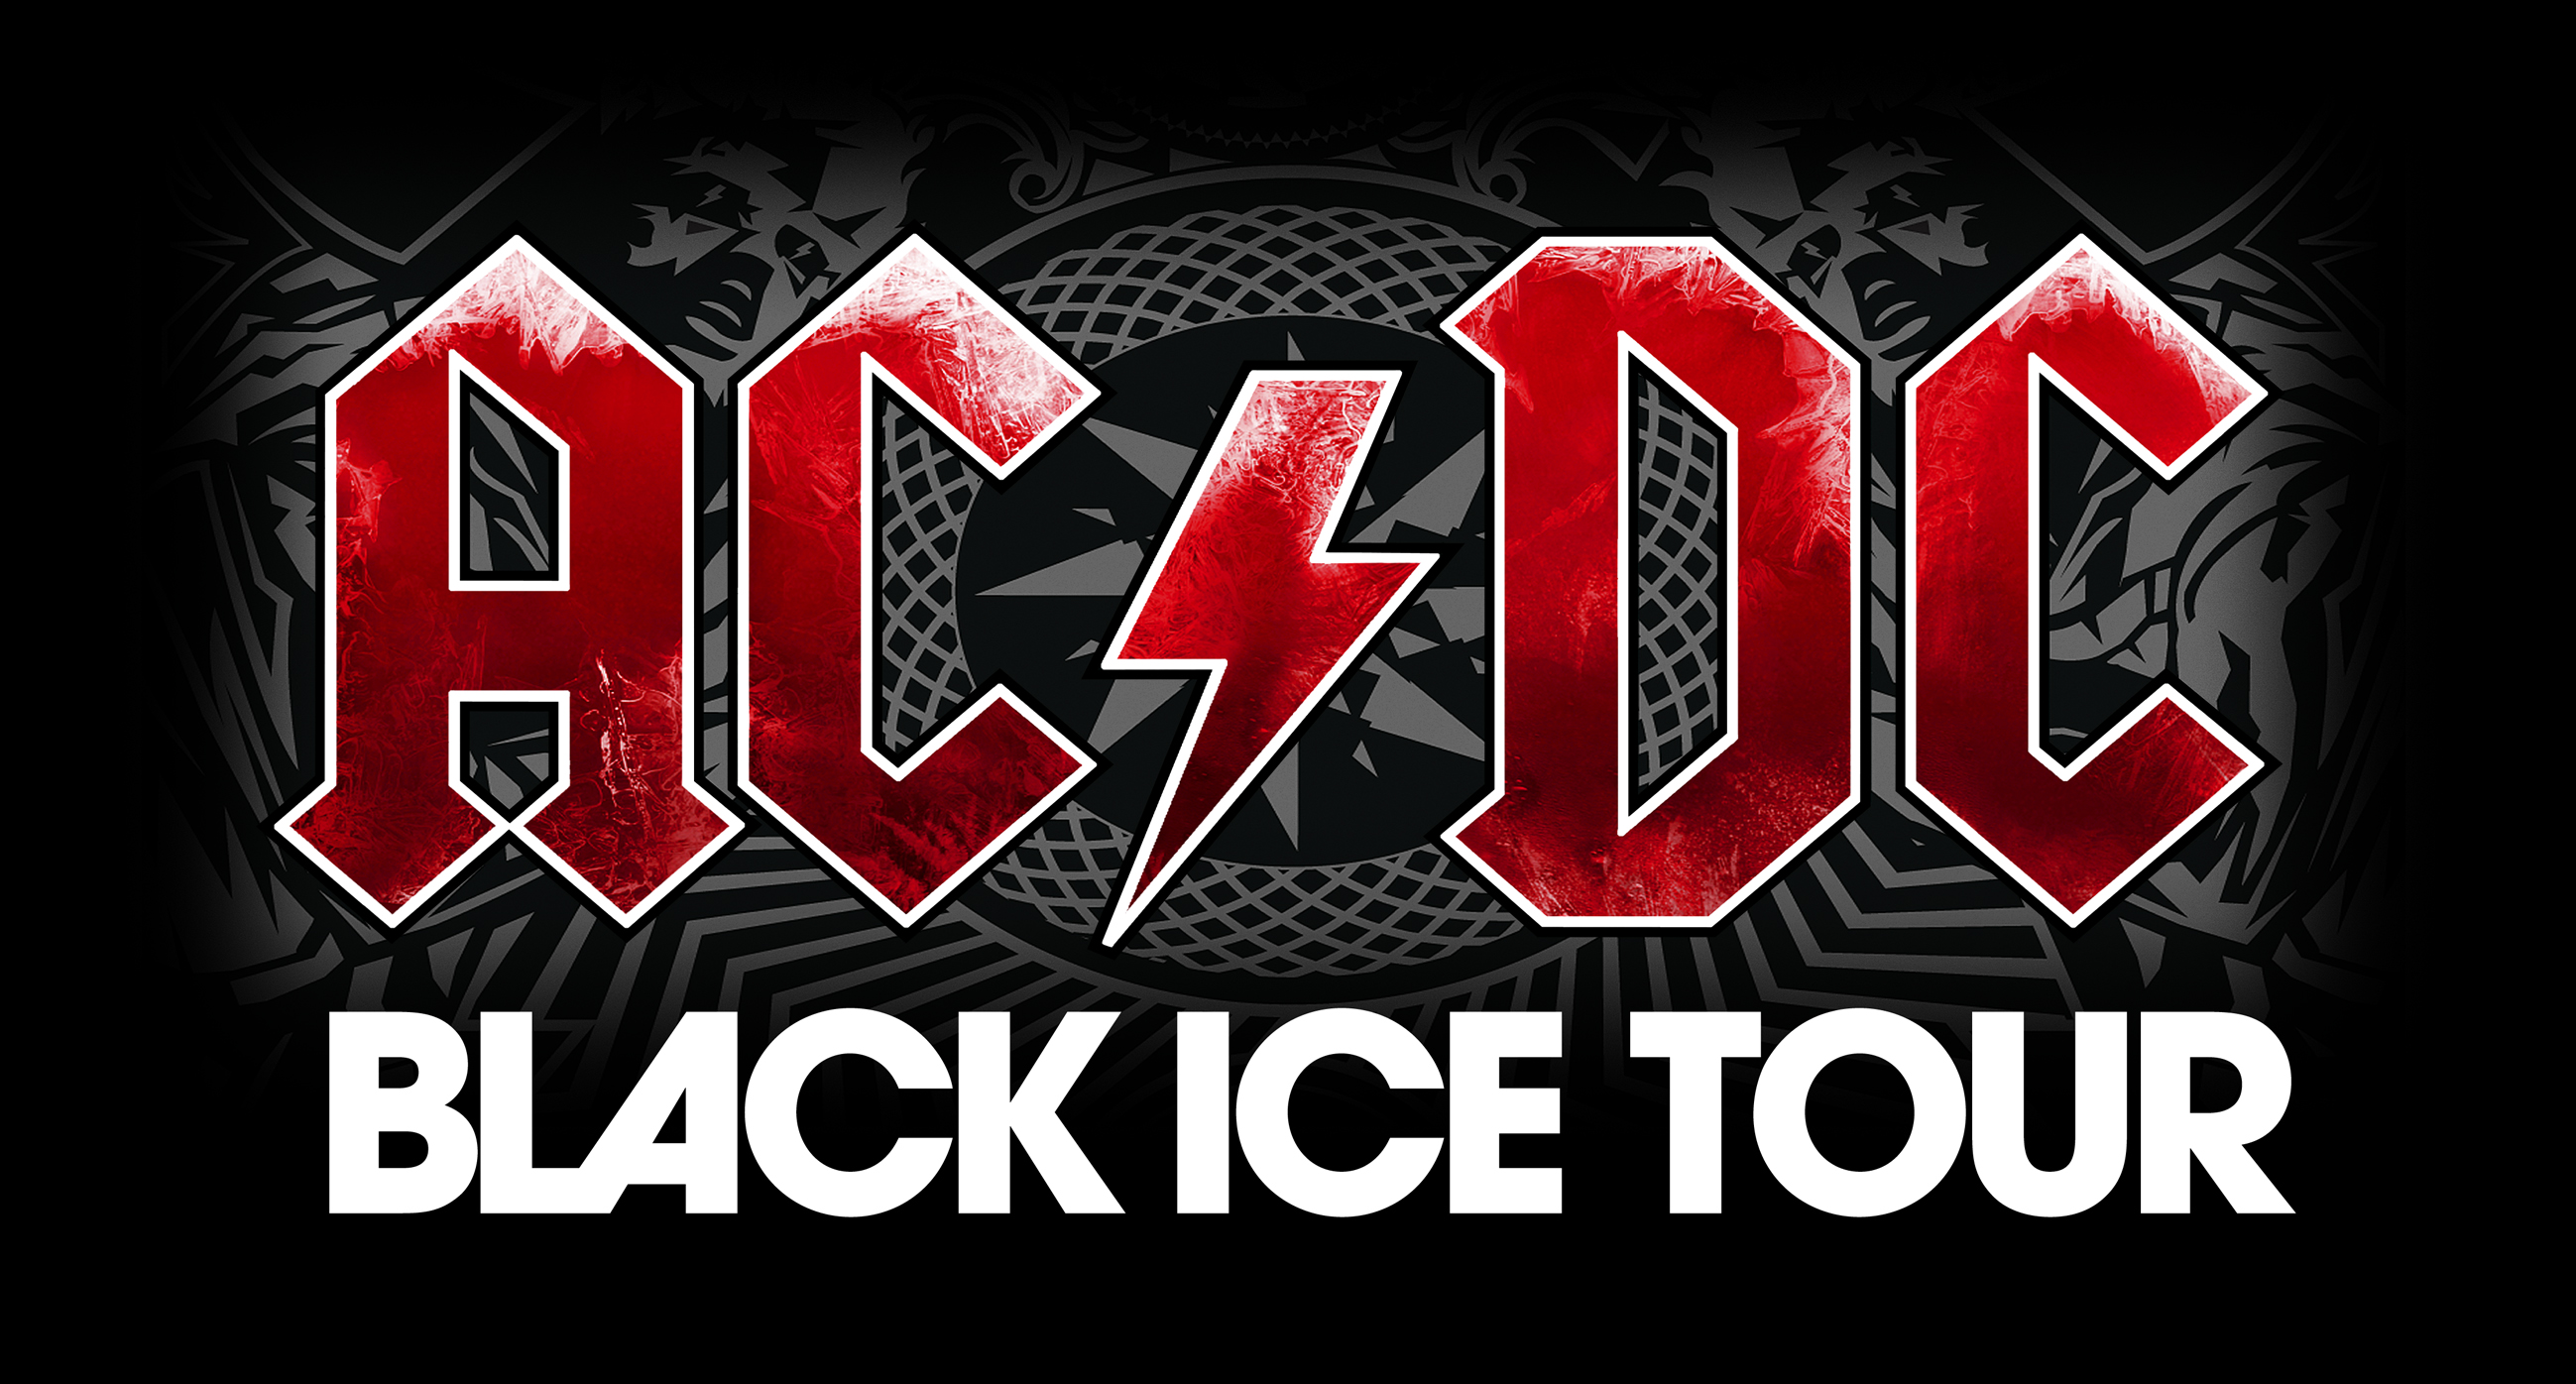 ac dc Artistfacts for ac/dc - facts, trivia, and bio information.